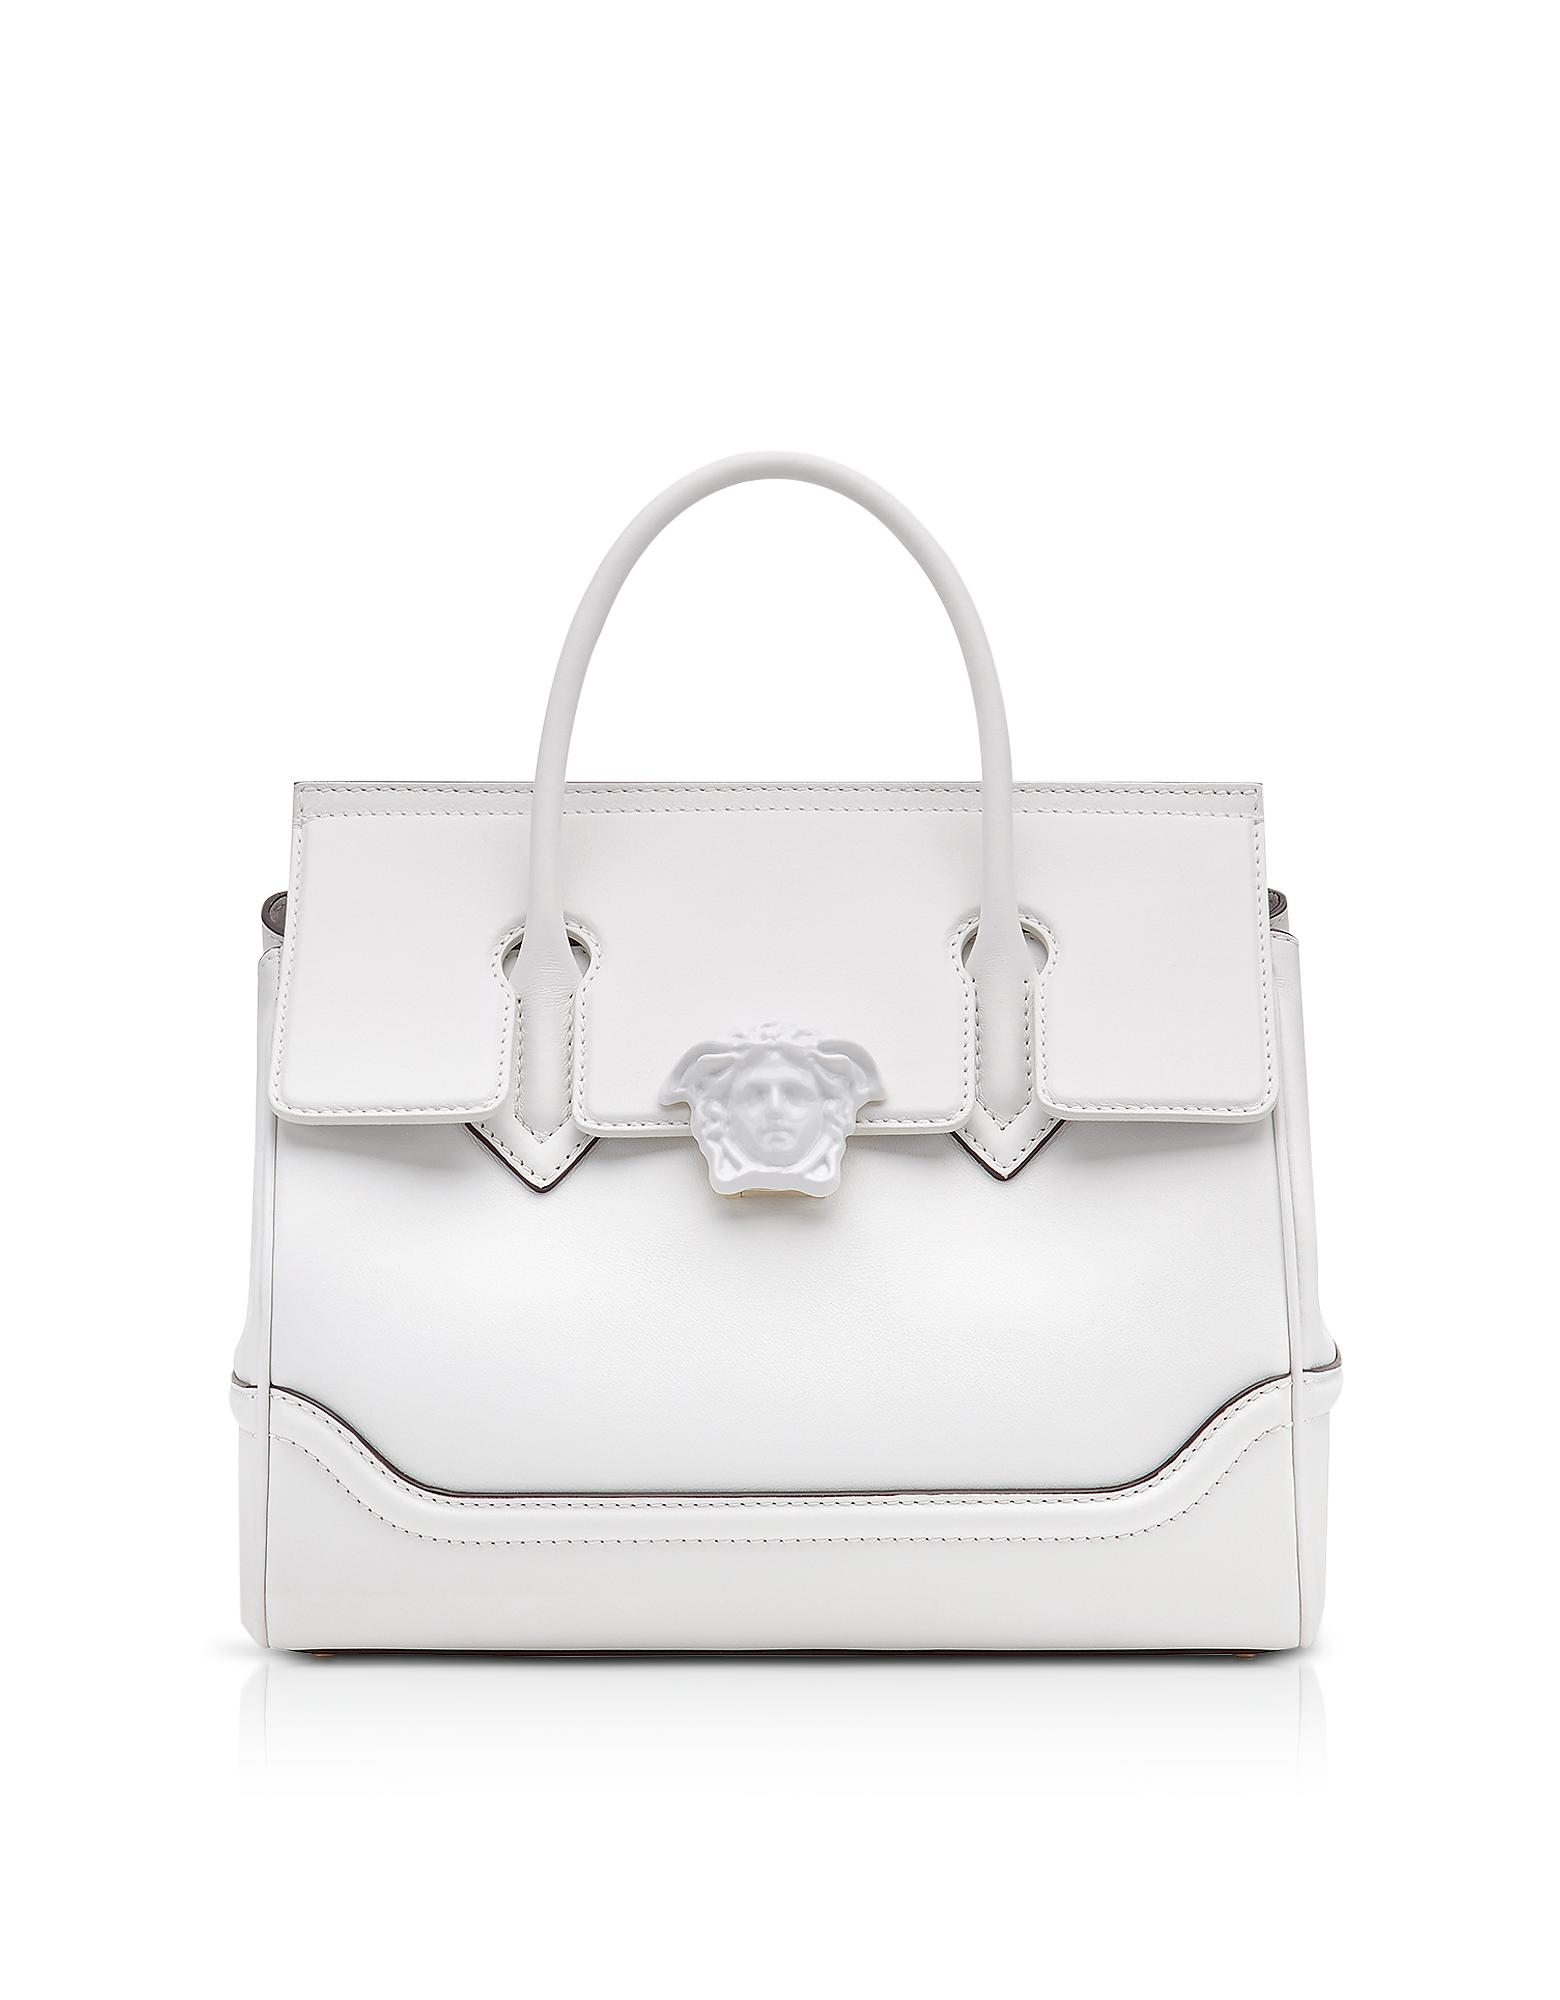 19ee33cd477 Versace Palazzo Empire Large Top Handle Bag in White - Lyst